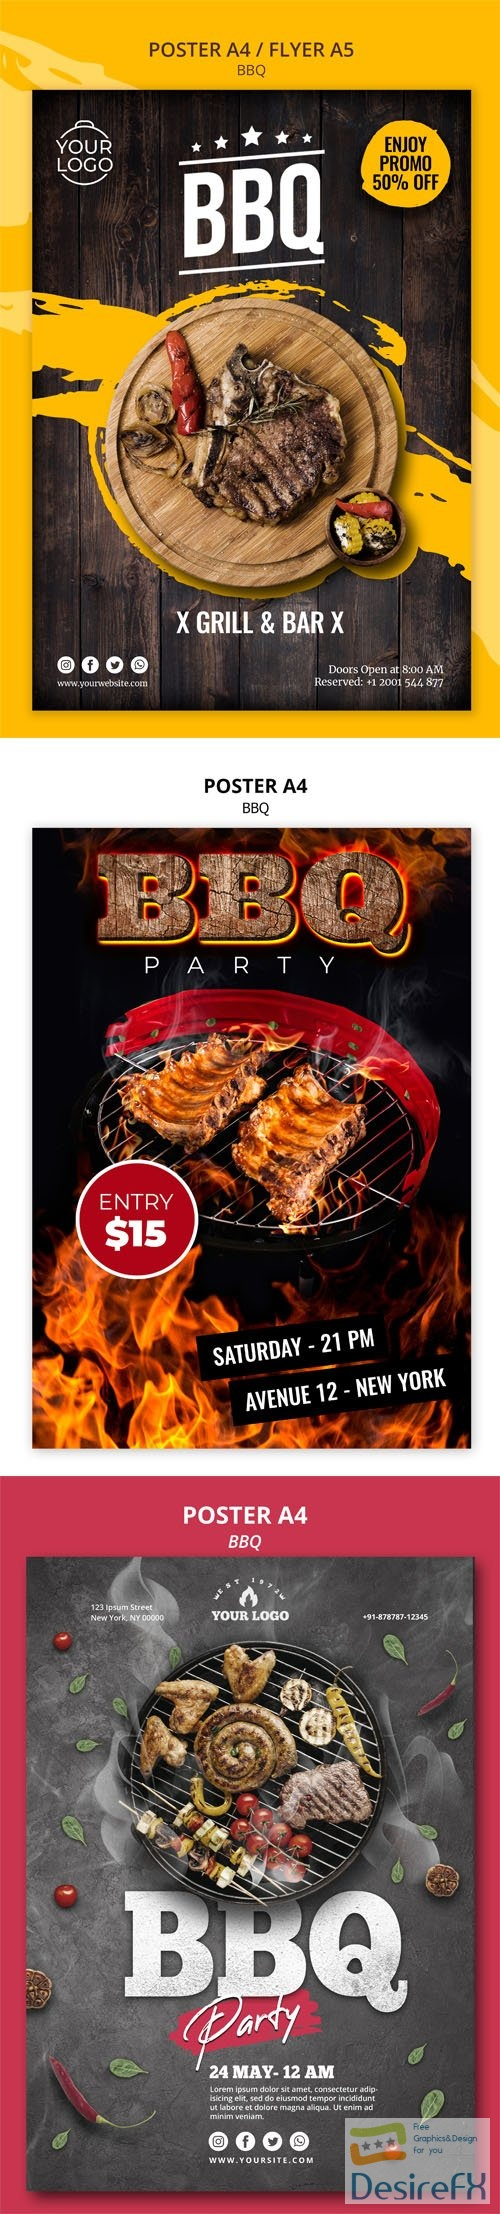 Barbeque BBQ Poster A4 / Flyer A5 PSD Templates